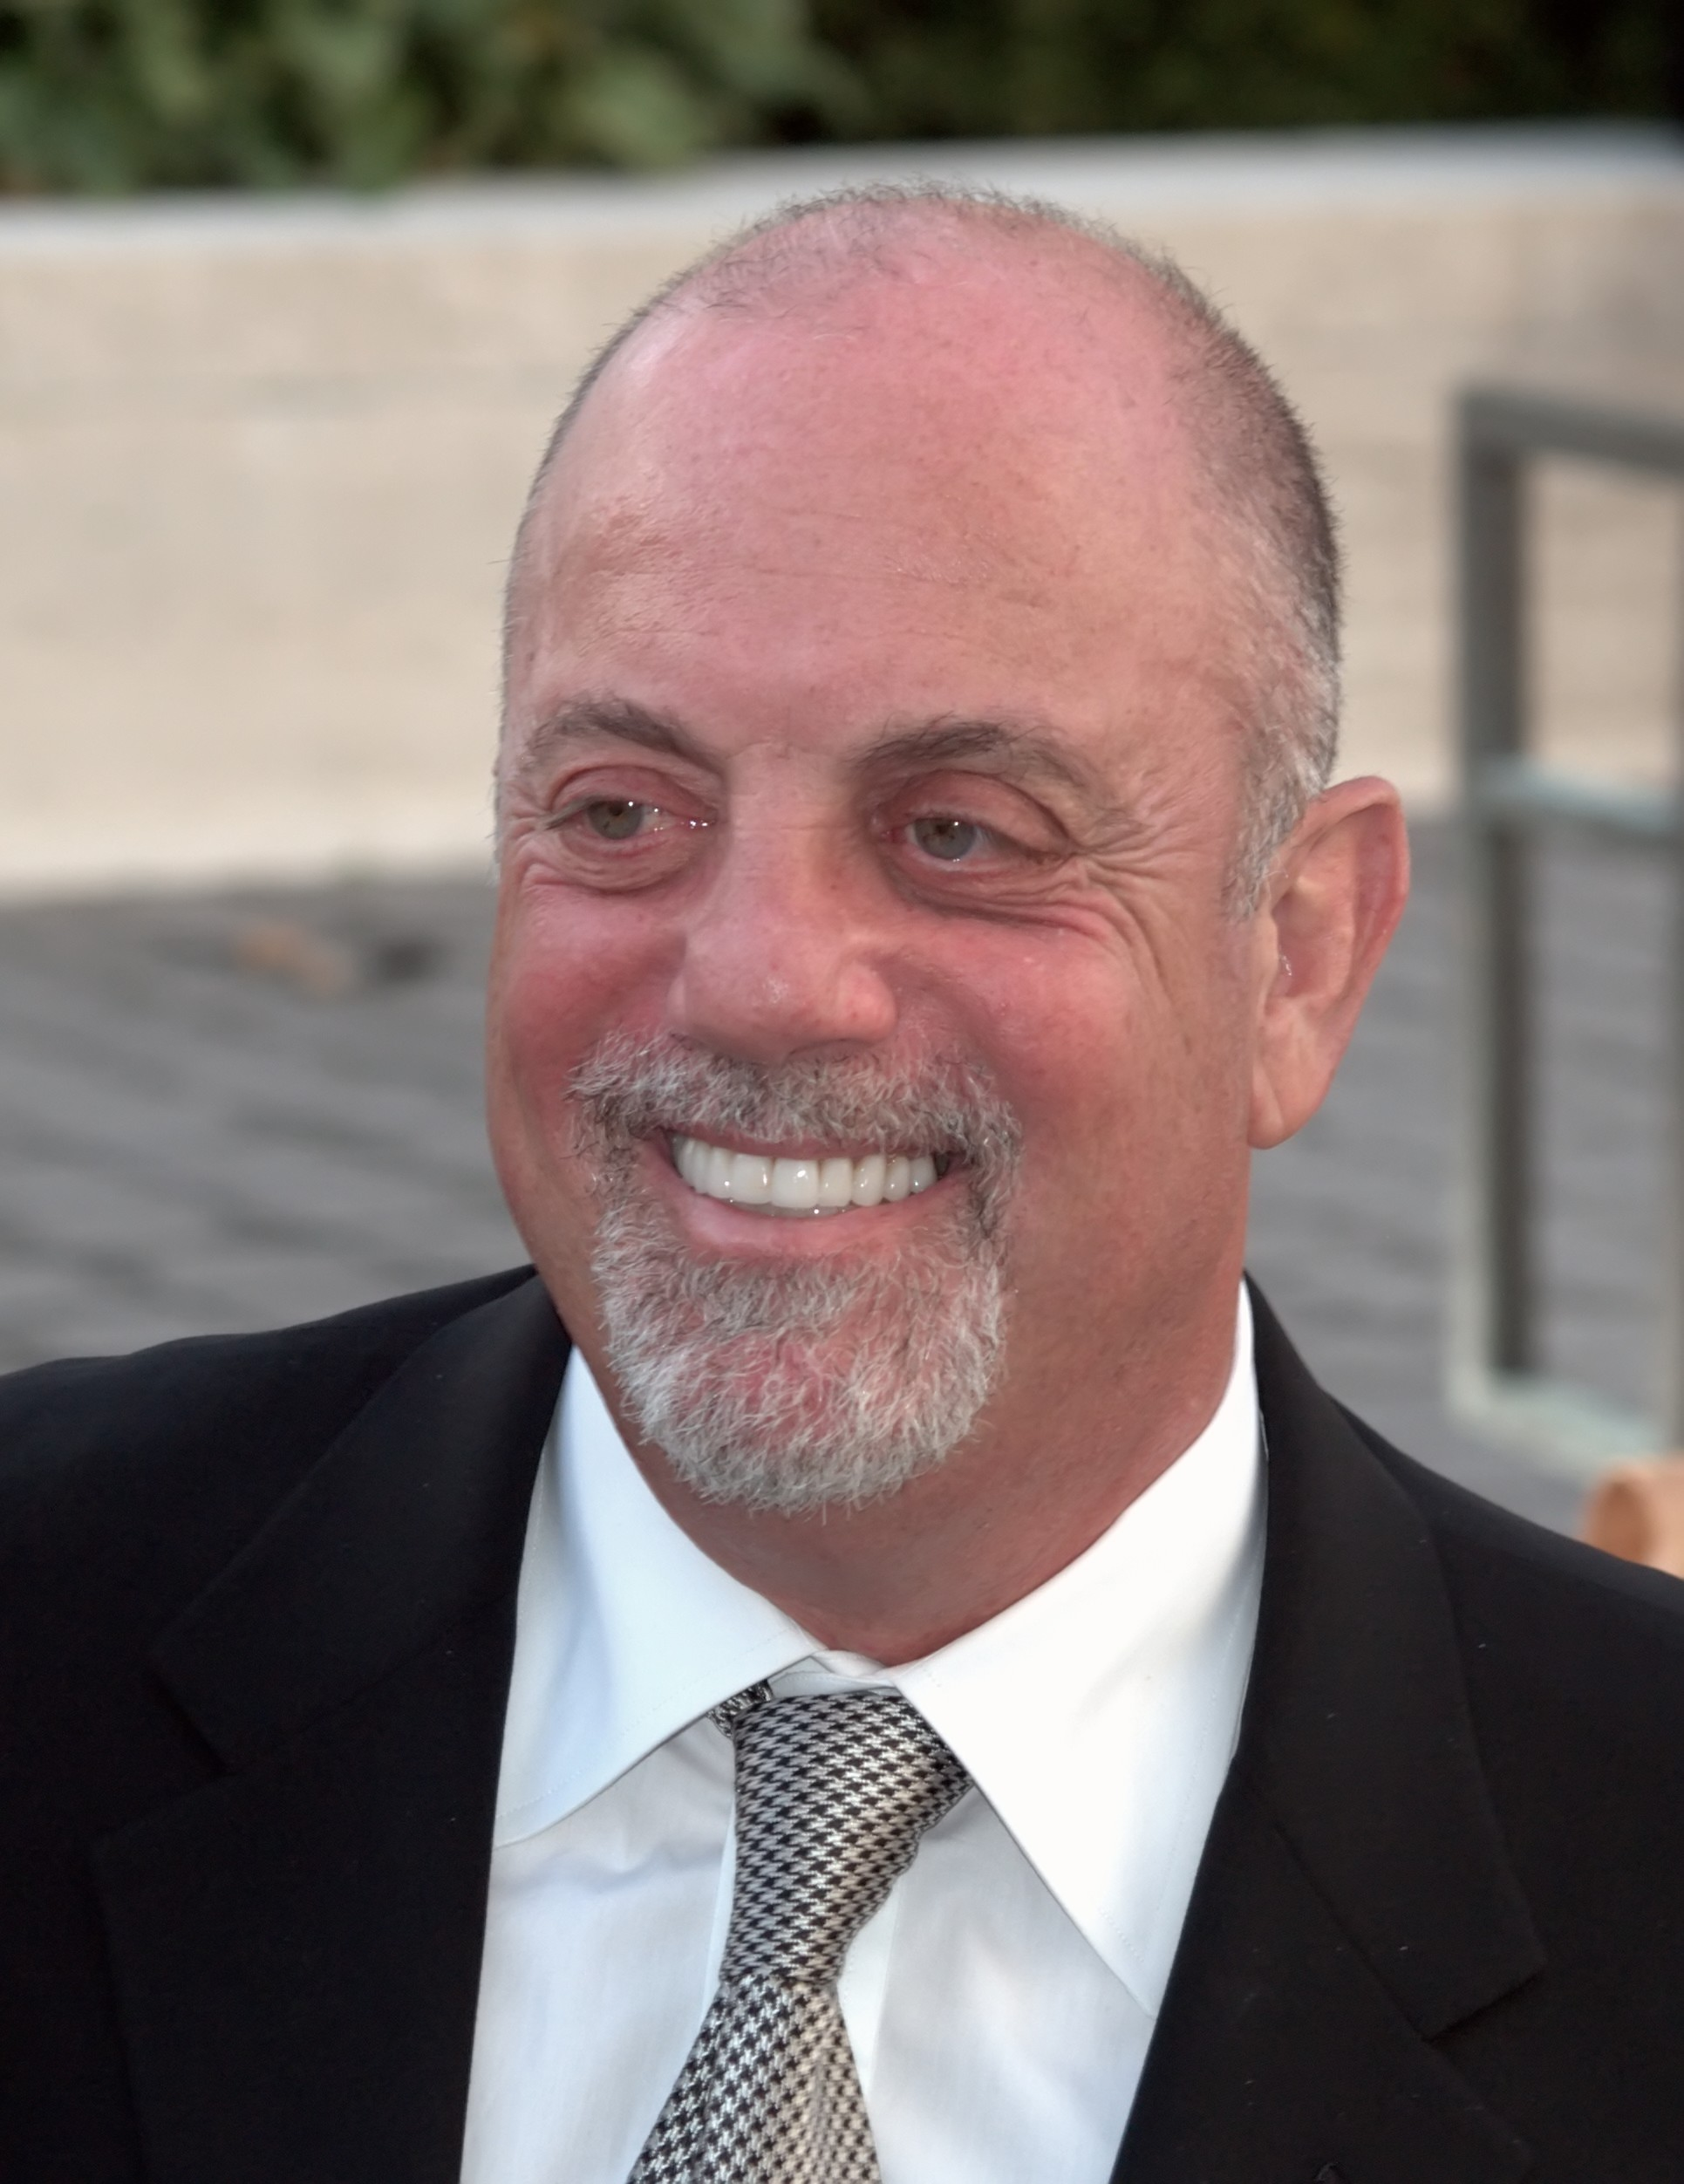 Billy_Joel_Shankbone_NYC_2009.jpg